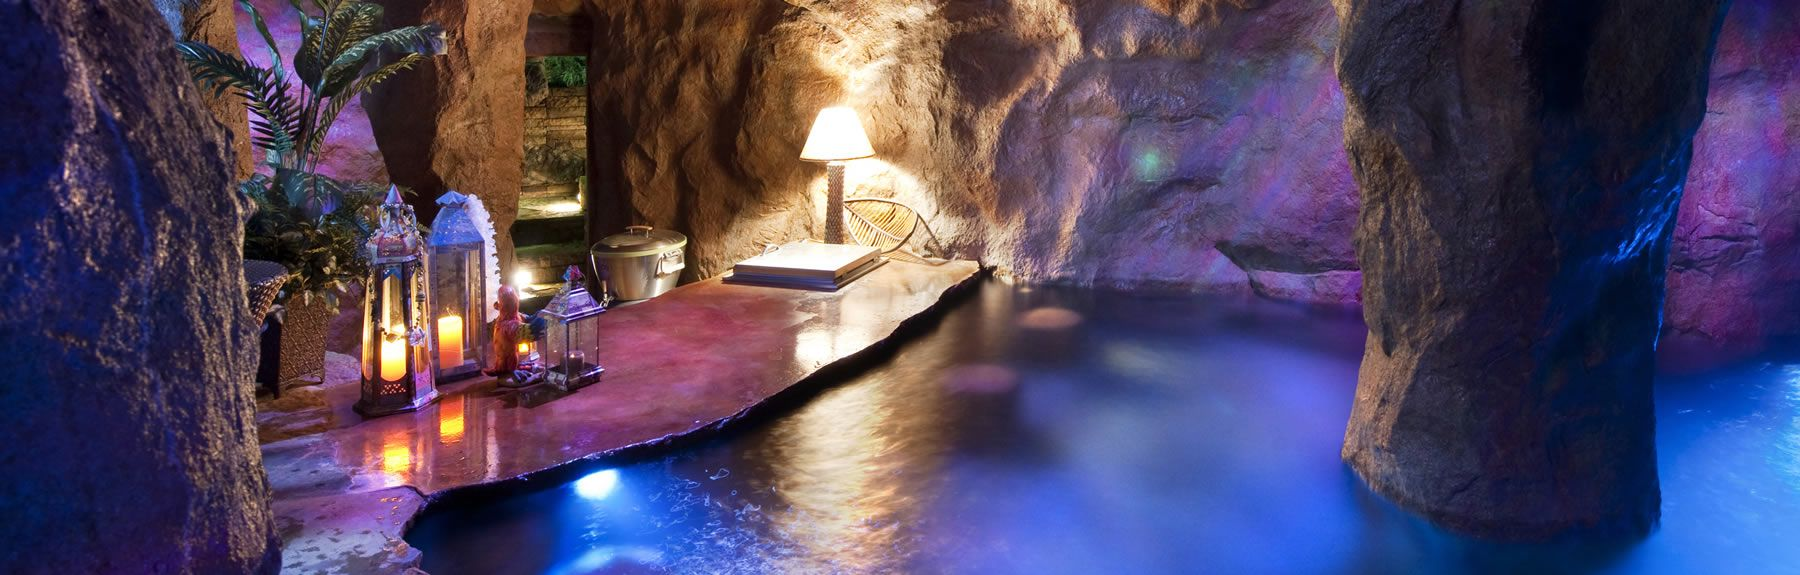 This Is Another Photo Of The Fantasy Pool Grotto At Twin Creek Farms  Created By Caviness